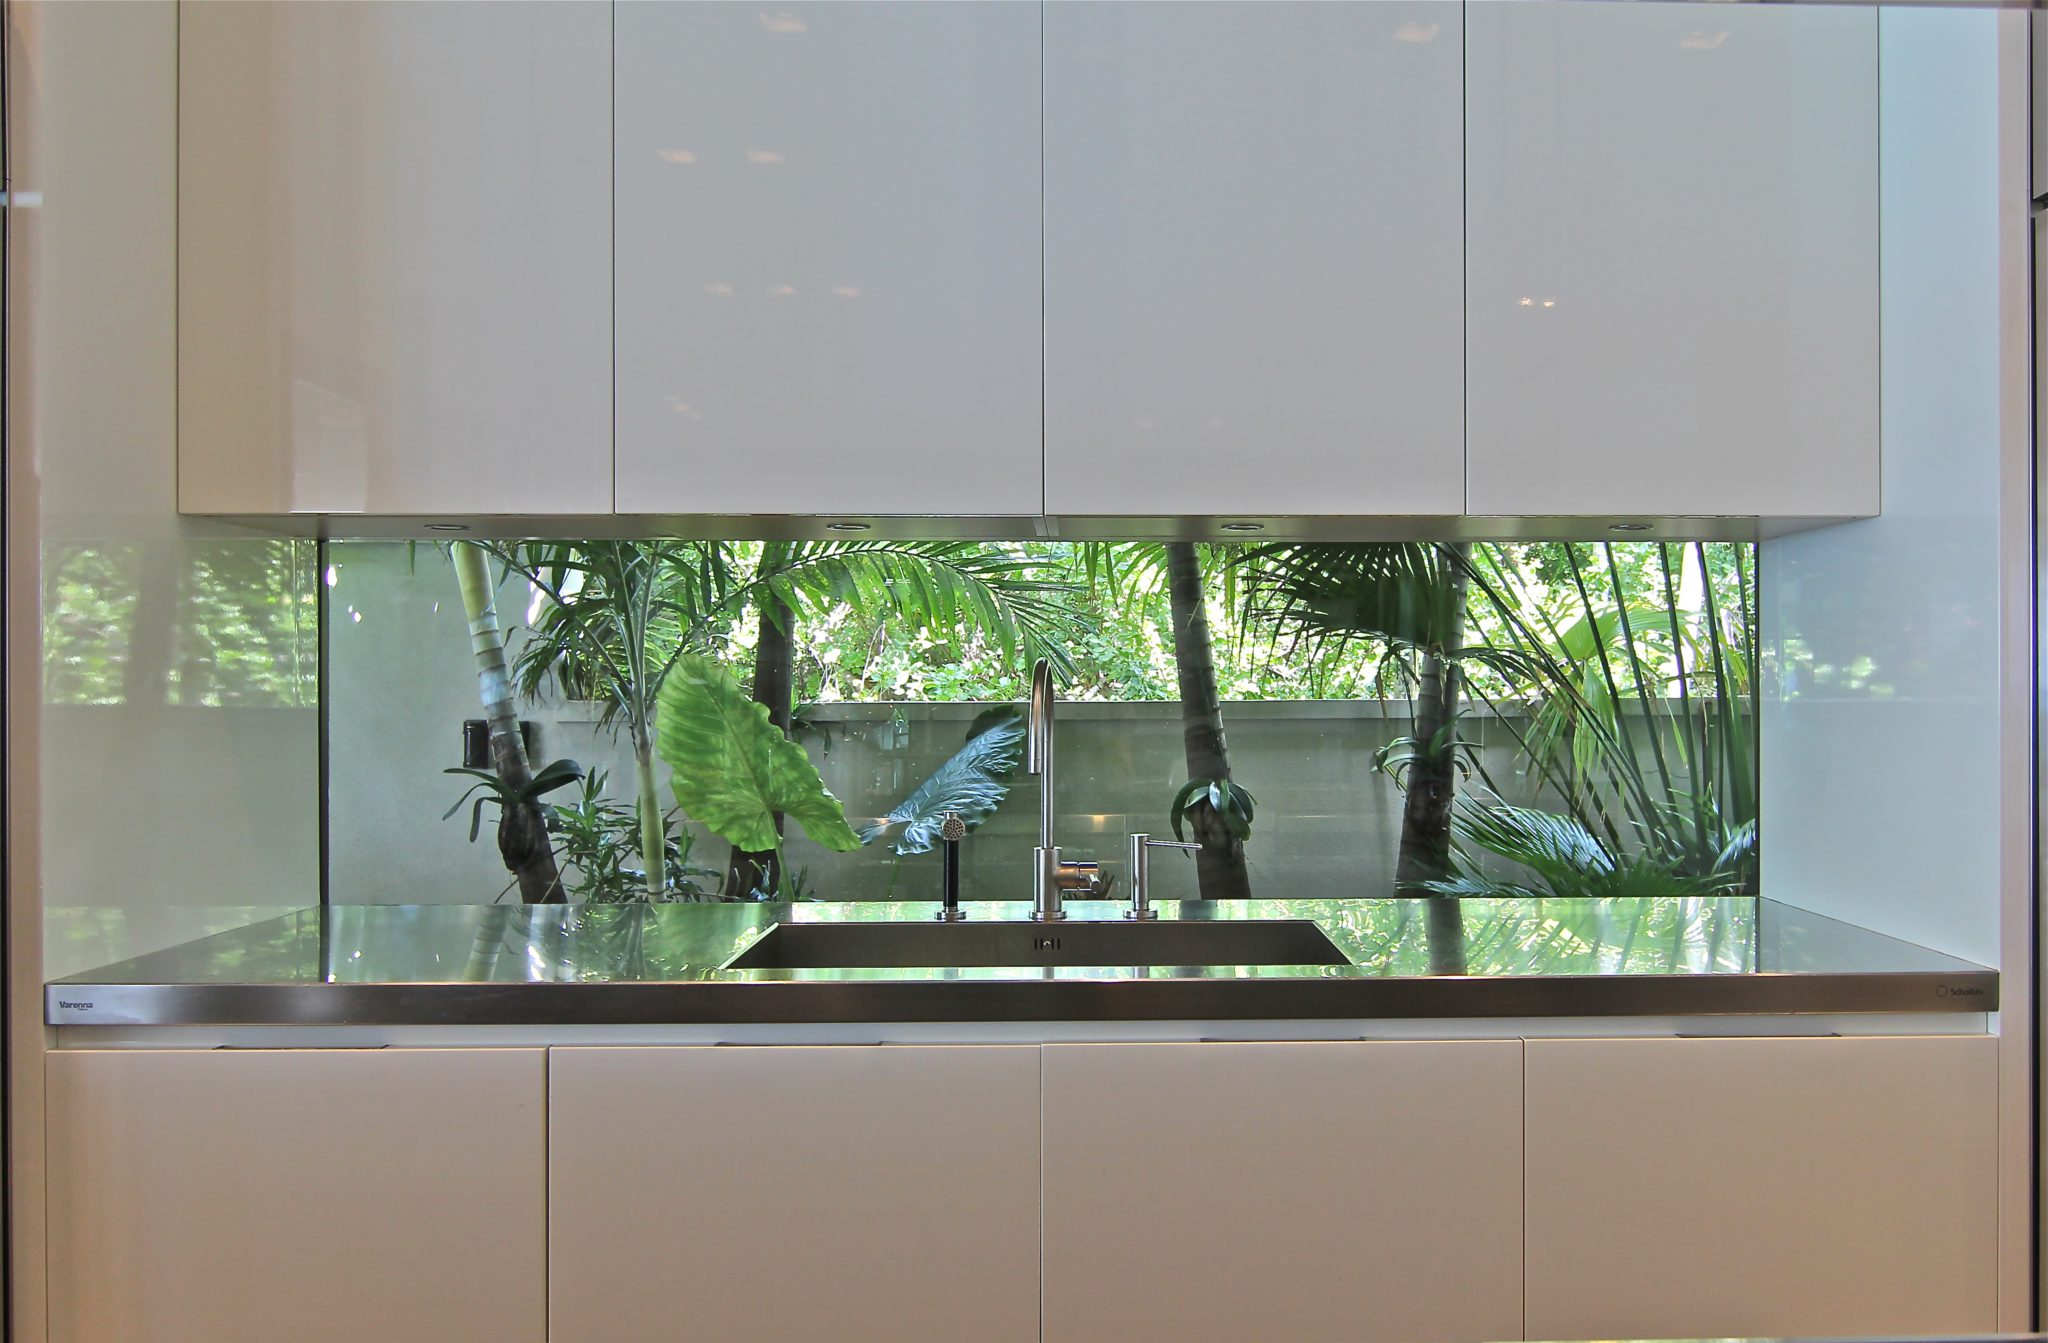 Bringing nature in with a window back splash. by Chelsea Design